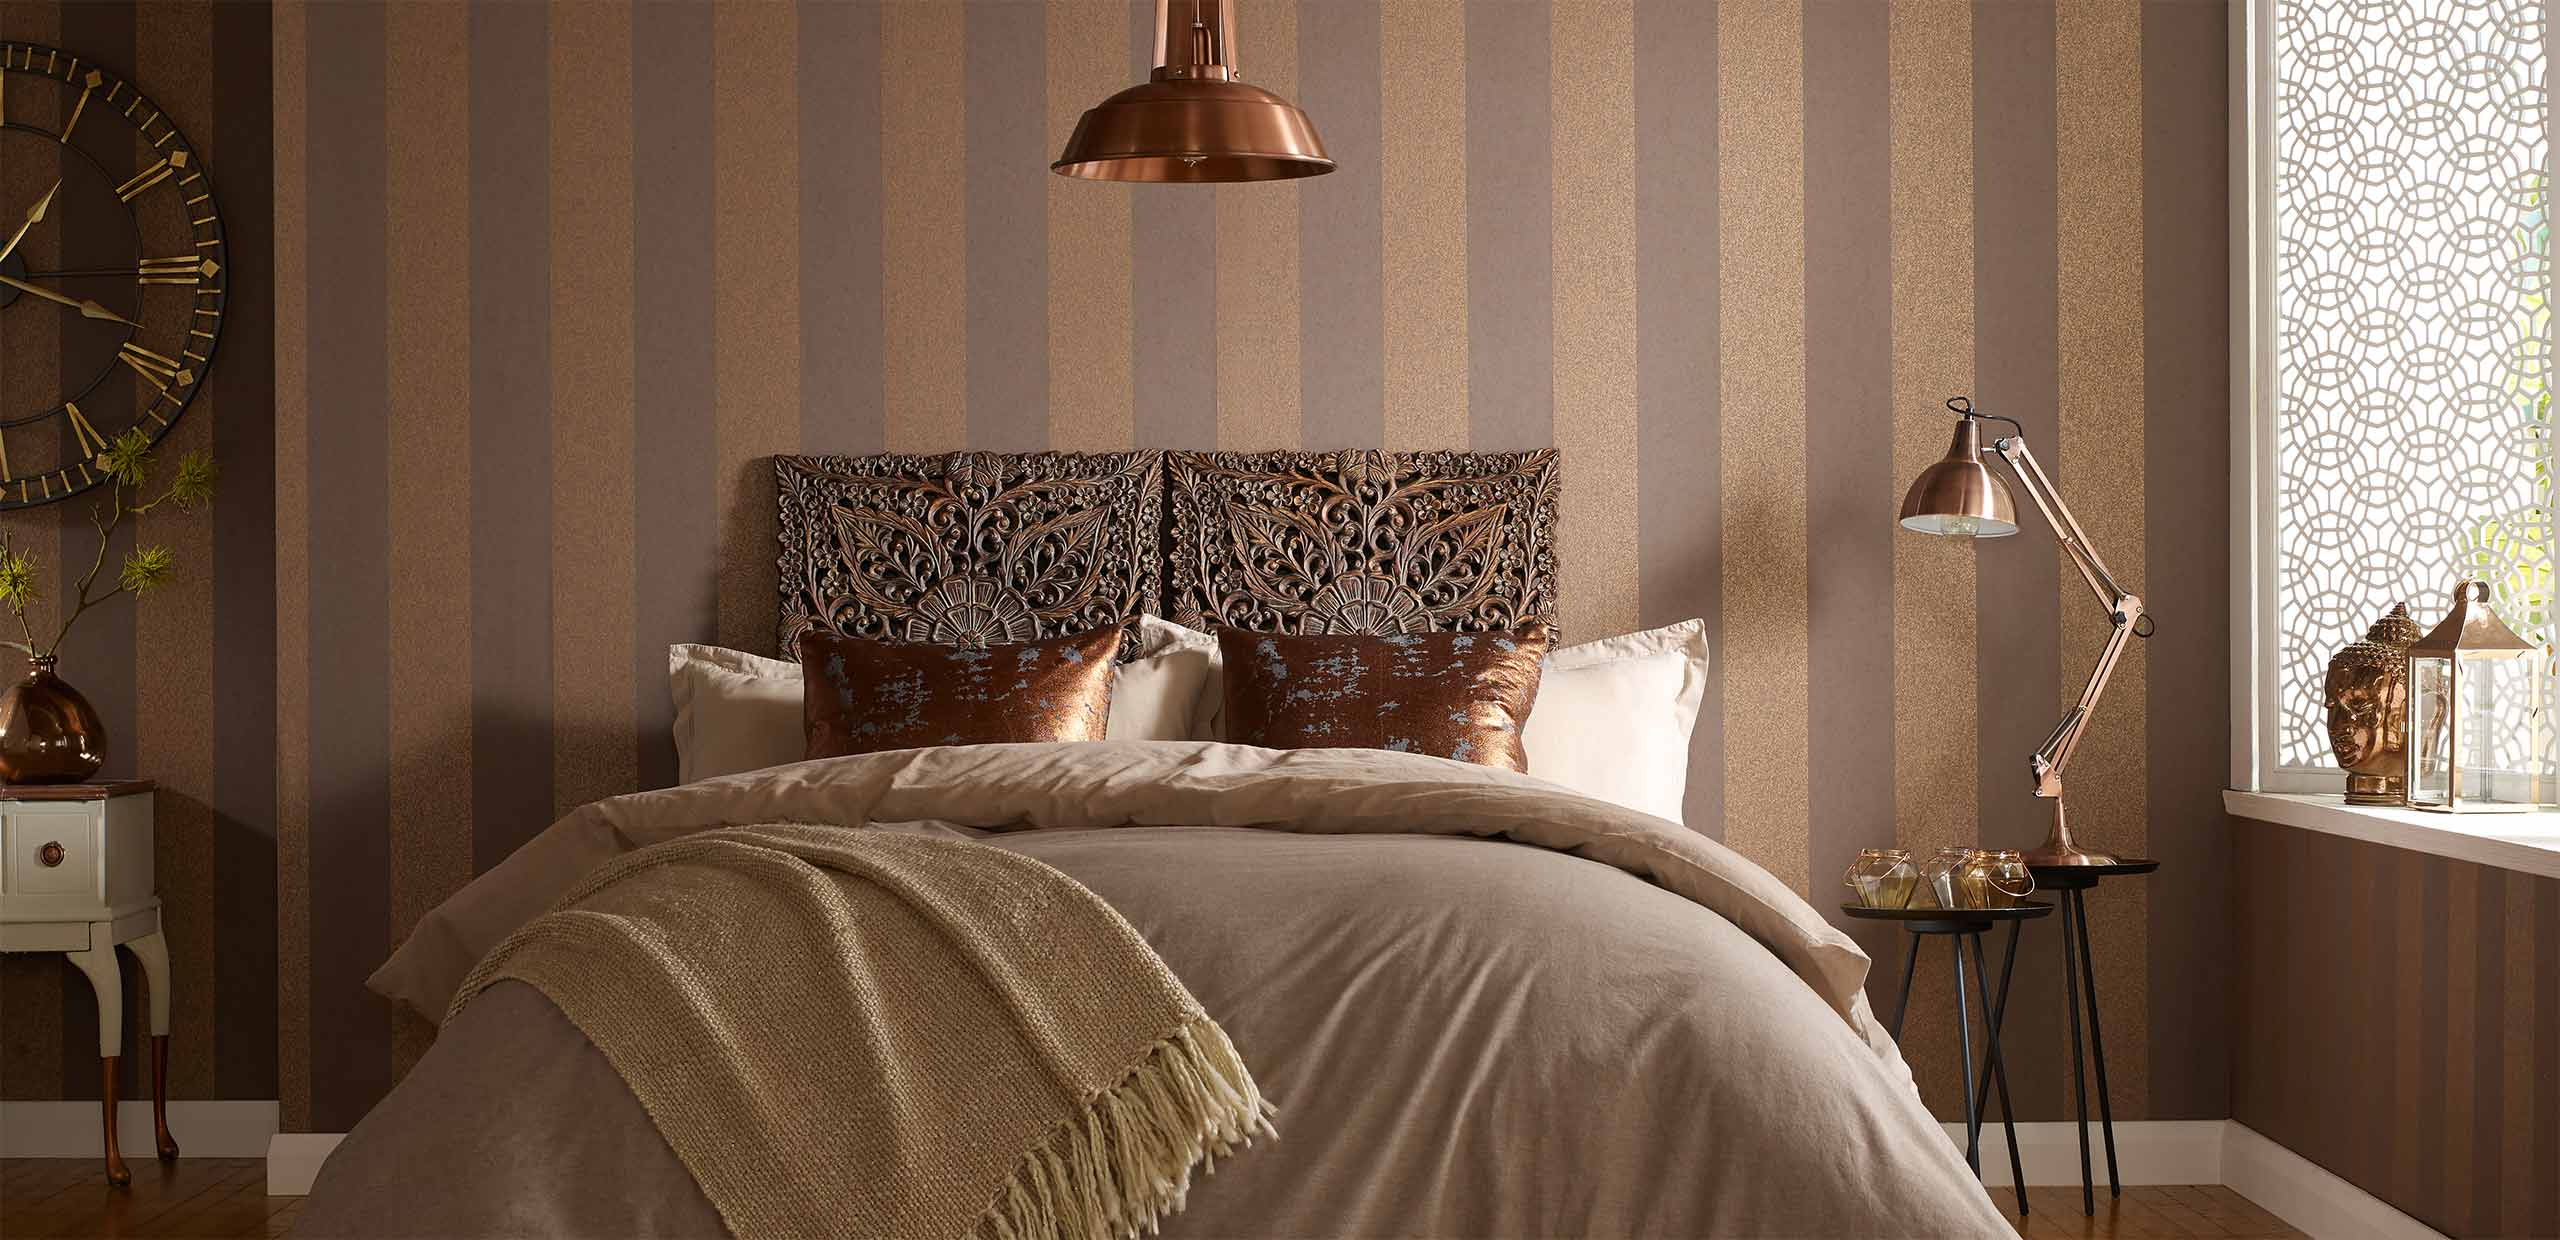 Tapeten Schlafzimmer Bedroom Wallpaper Wall Decor Ideas For Bedrooms